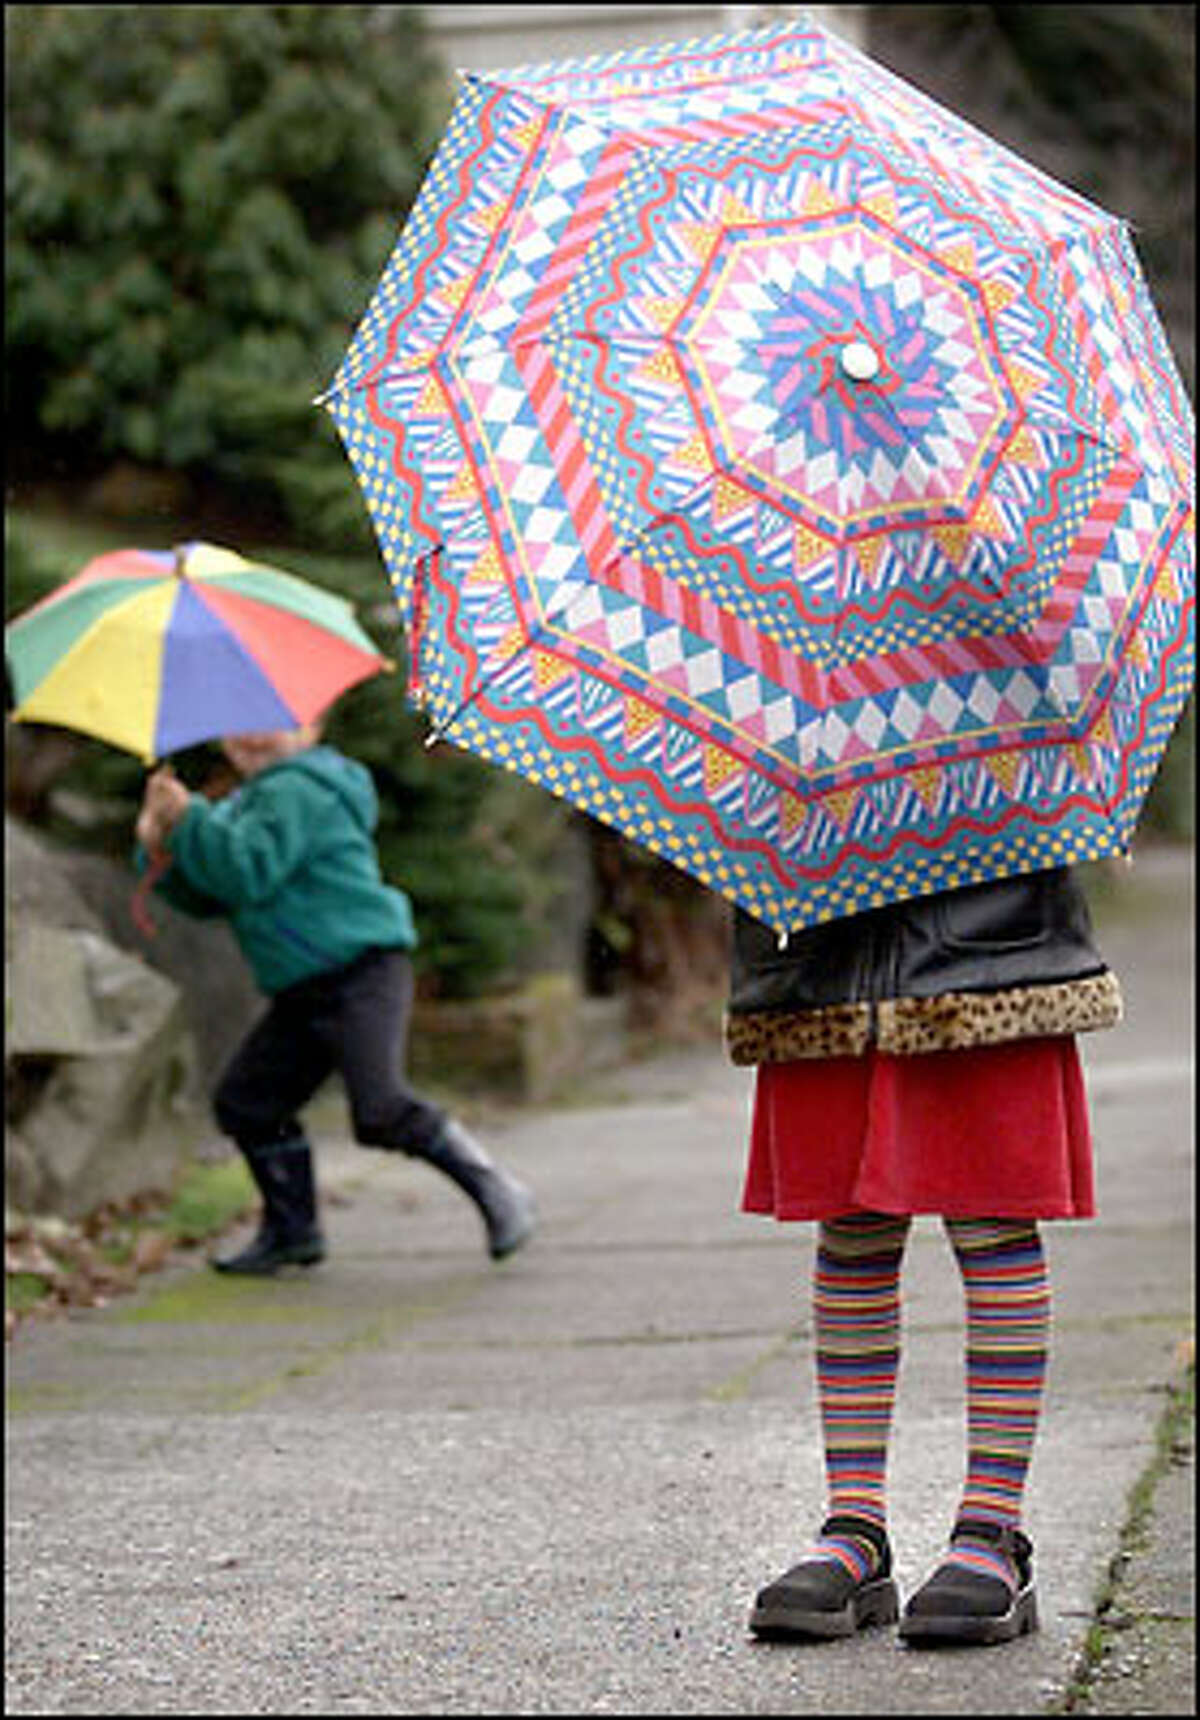 Madeleine Stein, 6½, and her brother Dylan, 4½, unfurl seldom-used umbrellas yesterday while walking home during a sprinkle from John Hay Elementary School on Queen Anne. Seattle can expect a chance of rain this morning and increasing rain tonight and tomorrow.